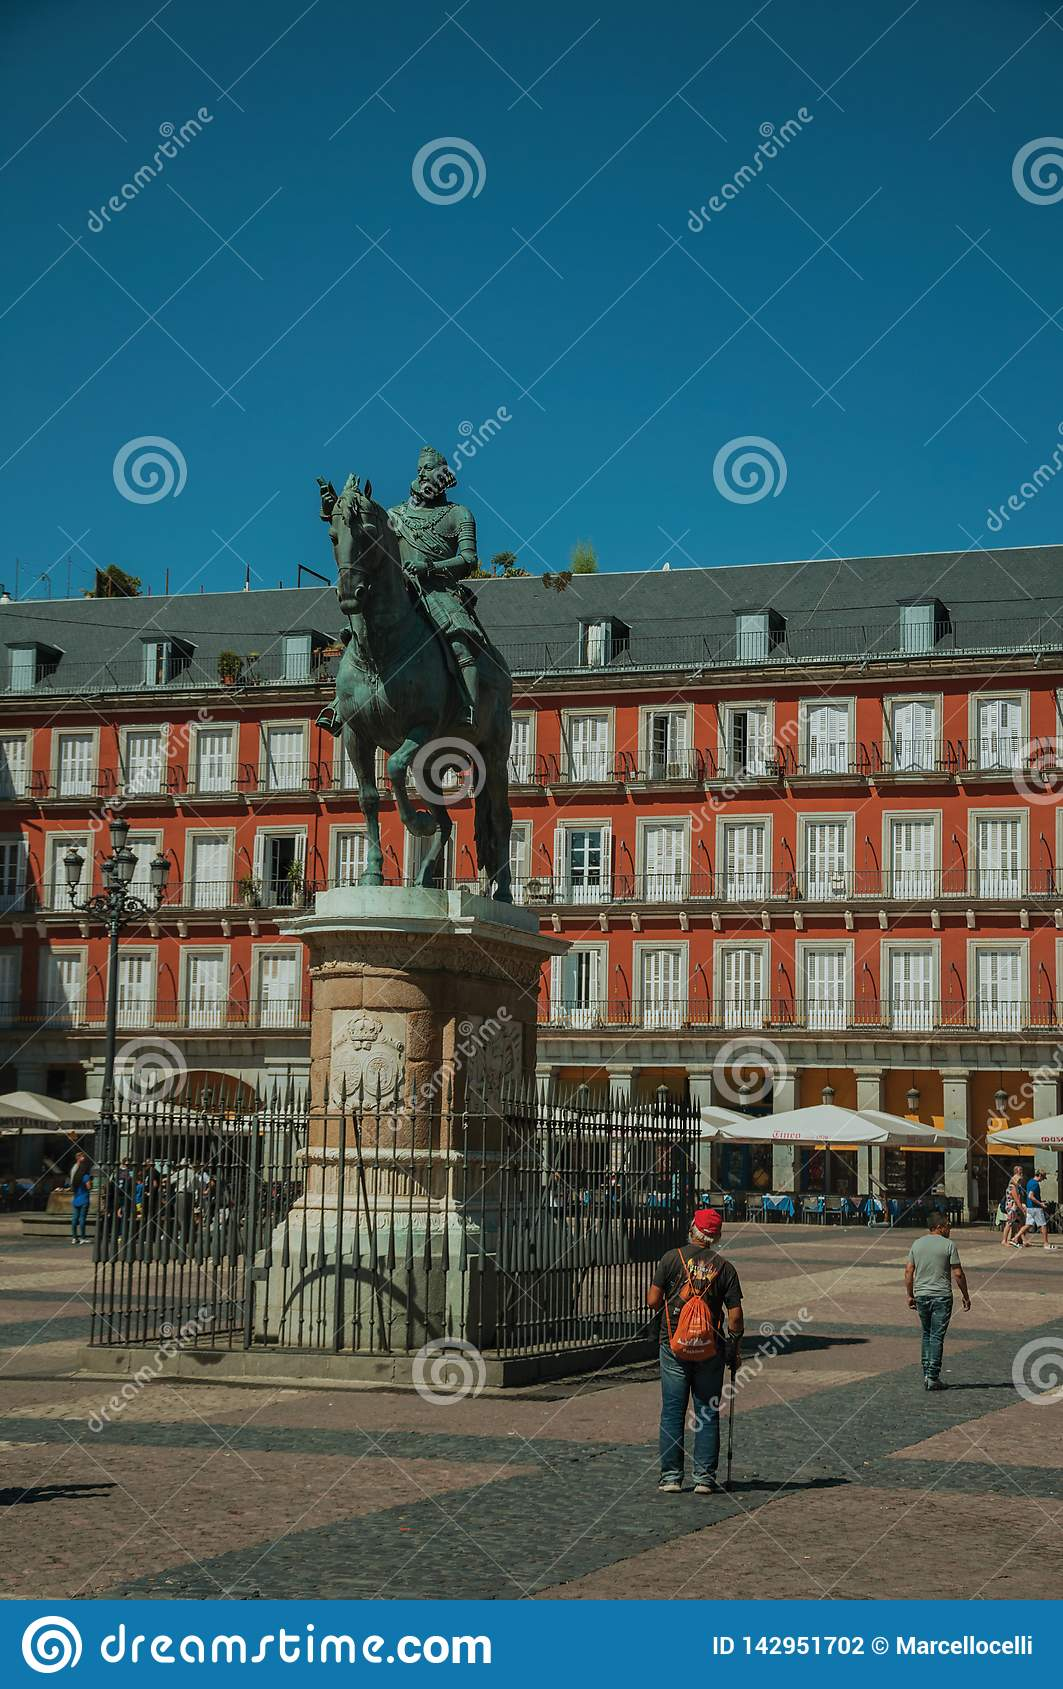 People on the Plaza Mayor with the statue of King Philip III in Madrid